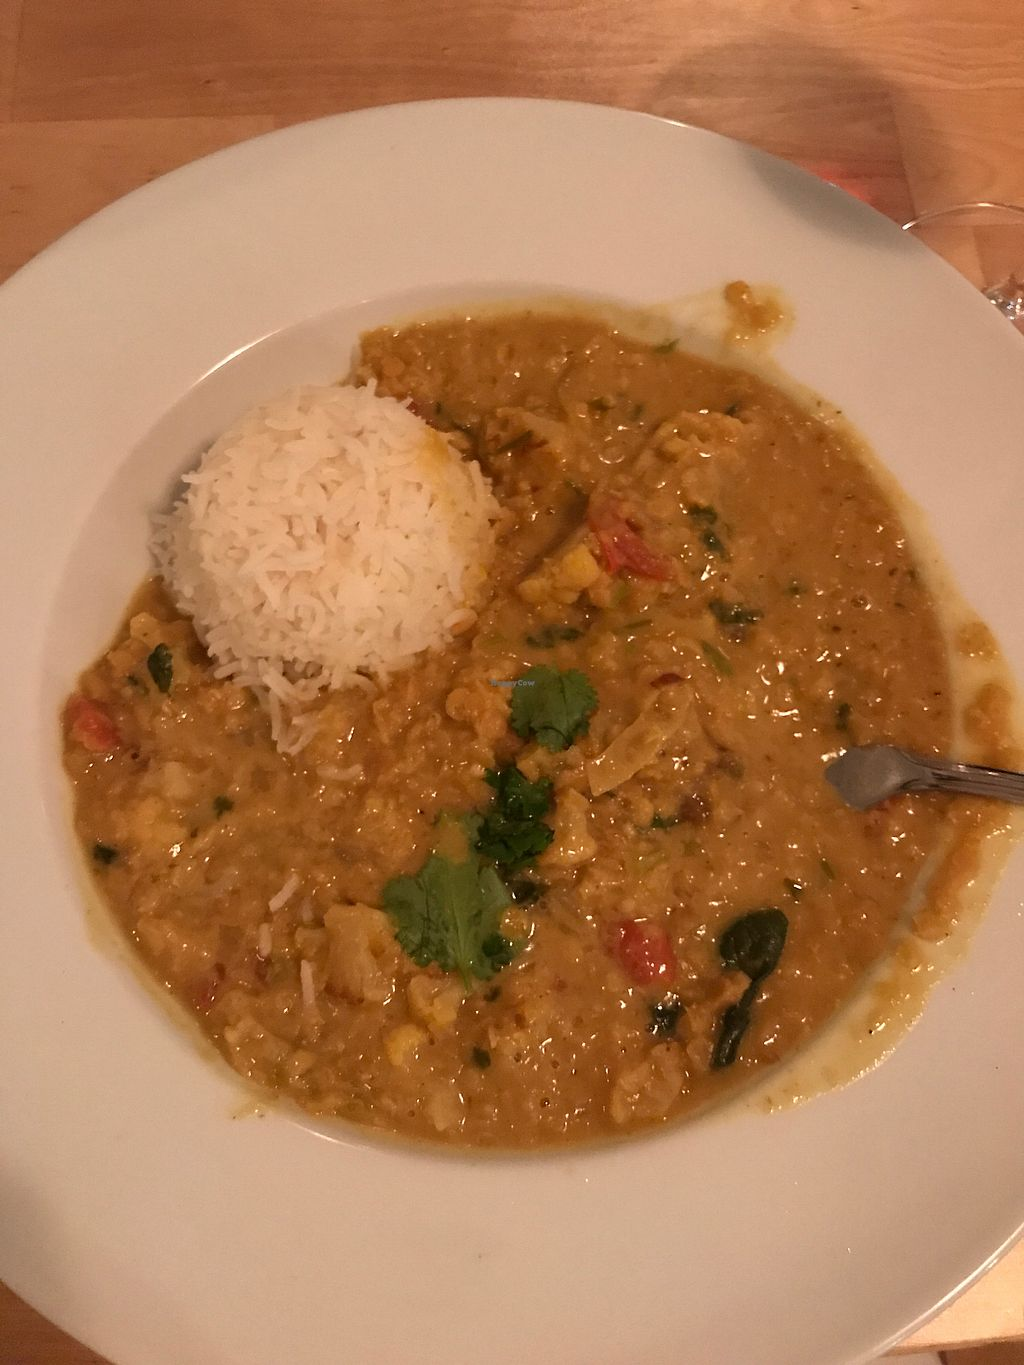 """Photo of Le Soixante 5  by <a href=""""/members/profile/EmilieP%C3%A9loquin"""">EmiliePéloquin</a> <br/>Lentils curry <br/> March 1, 2018  - <a href='/contact/abuse/image/60739/365185'>Report</a>"""